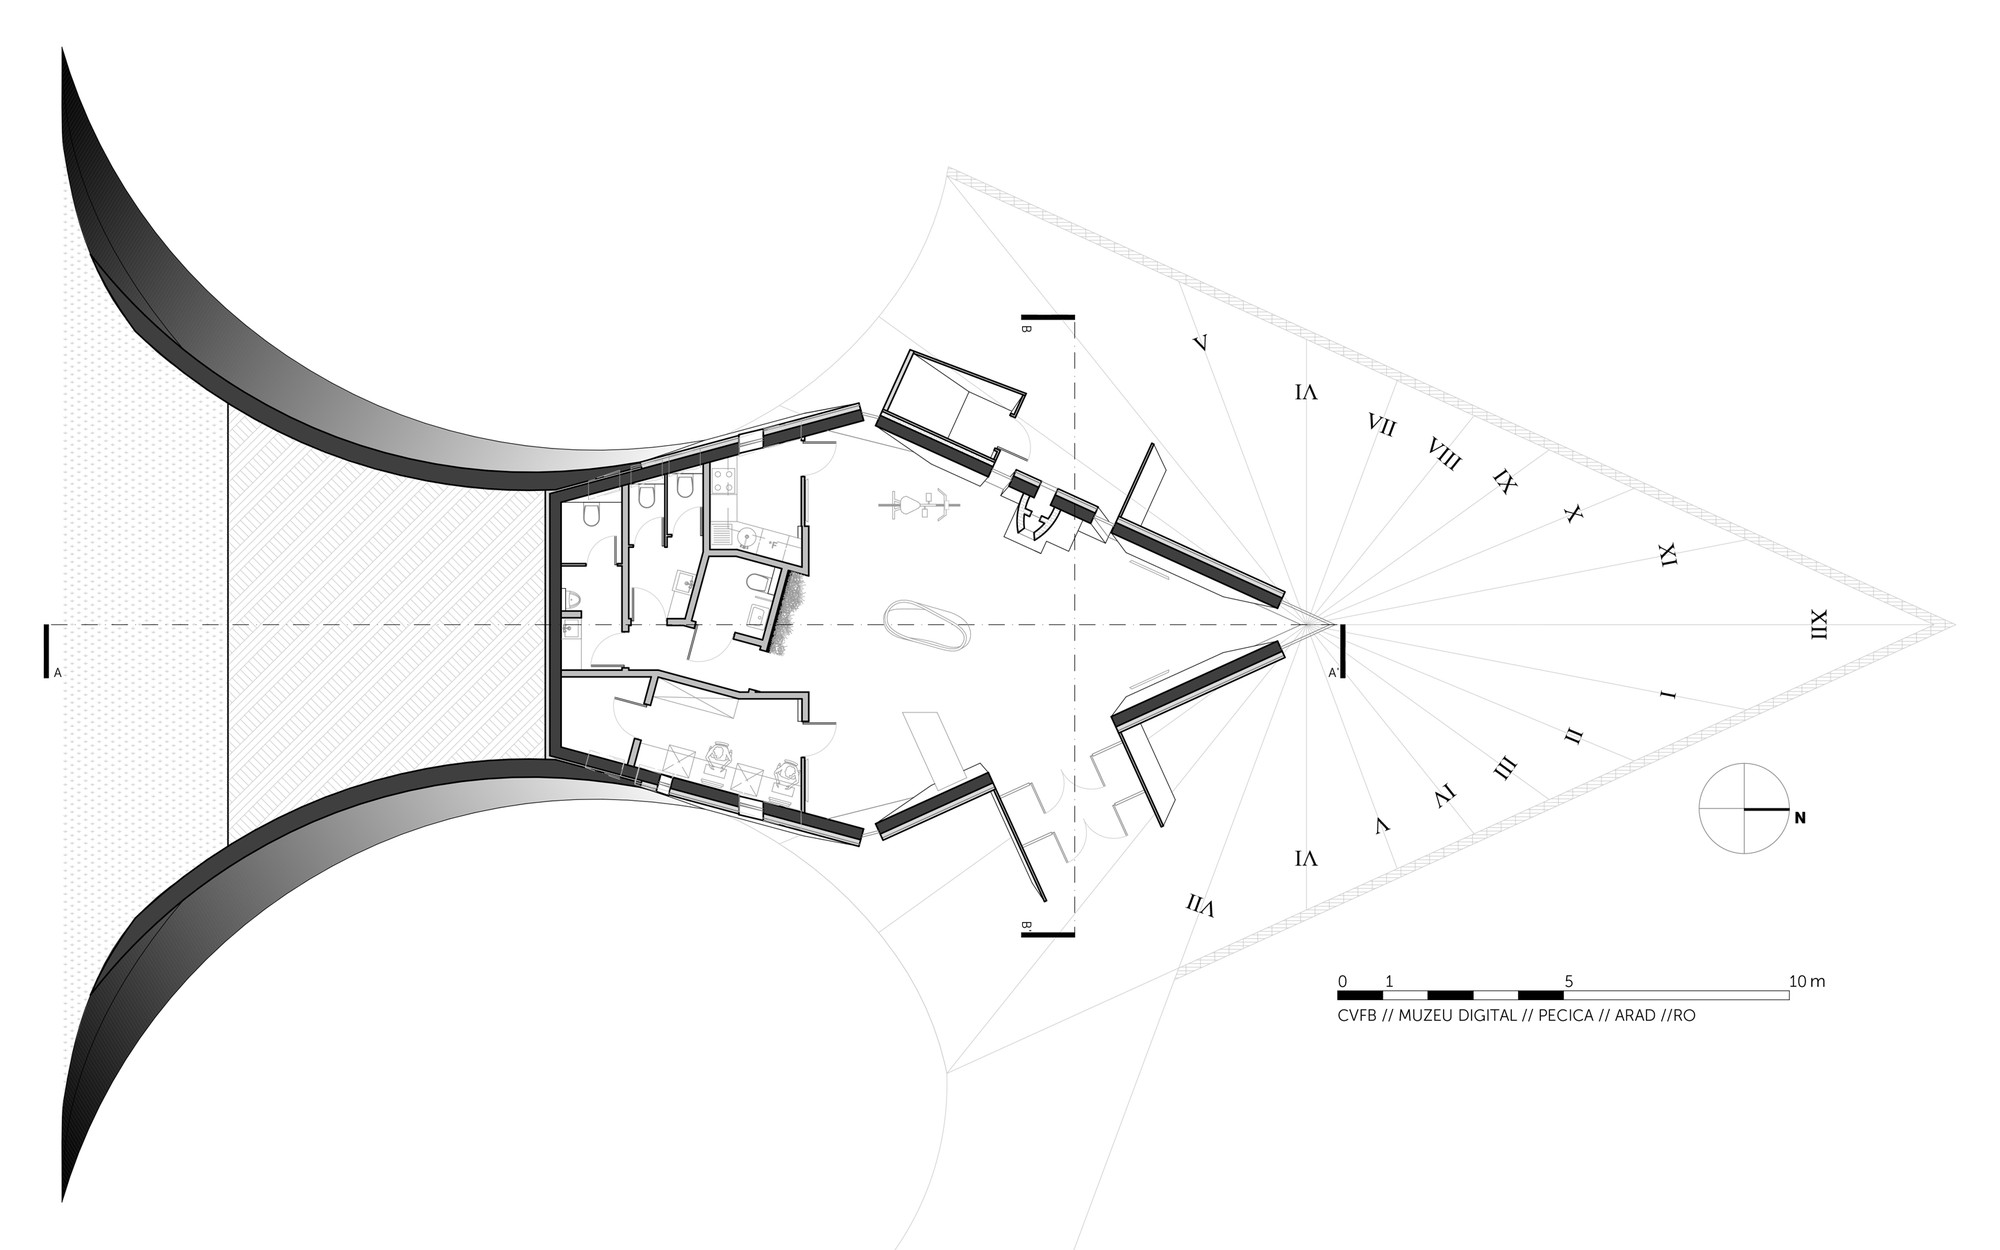 542616e4c07a80548f0001c3 The Family Playground House Design Floor Plan in addition 55f75bd4e58ece101700013b The Alpine Place Ayre Chamberlain Gaunt Typical Apartment Layouts together with aeroprojects as well 5101957 besides Thought Bubble Fv4aBX Clipart. on projects 4